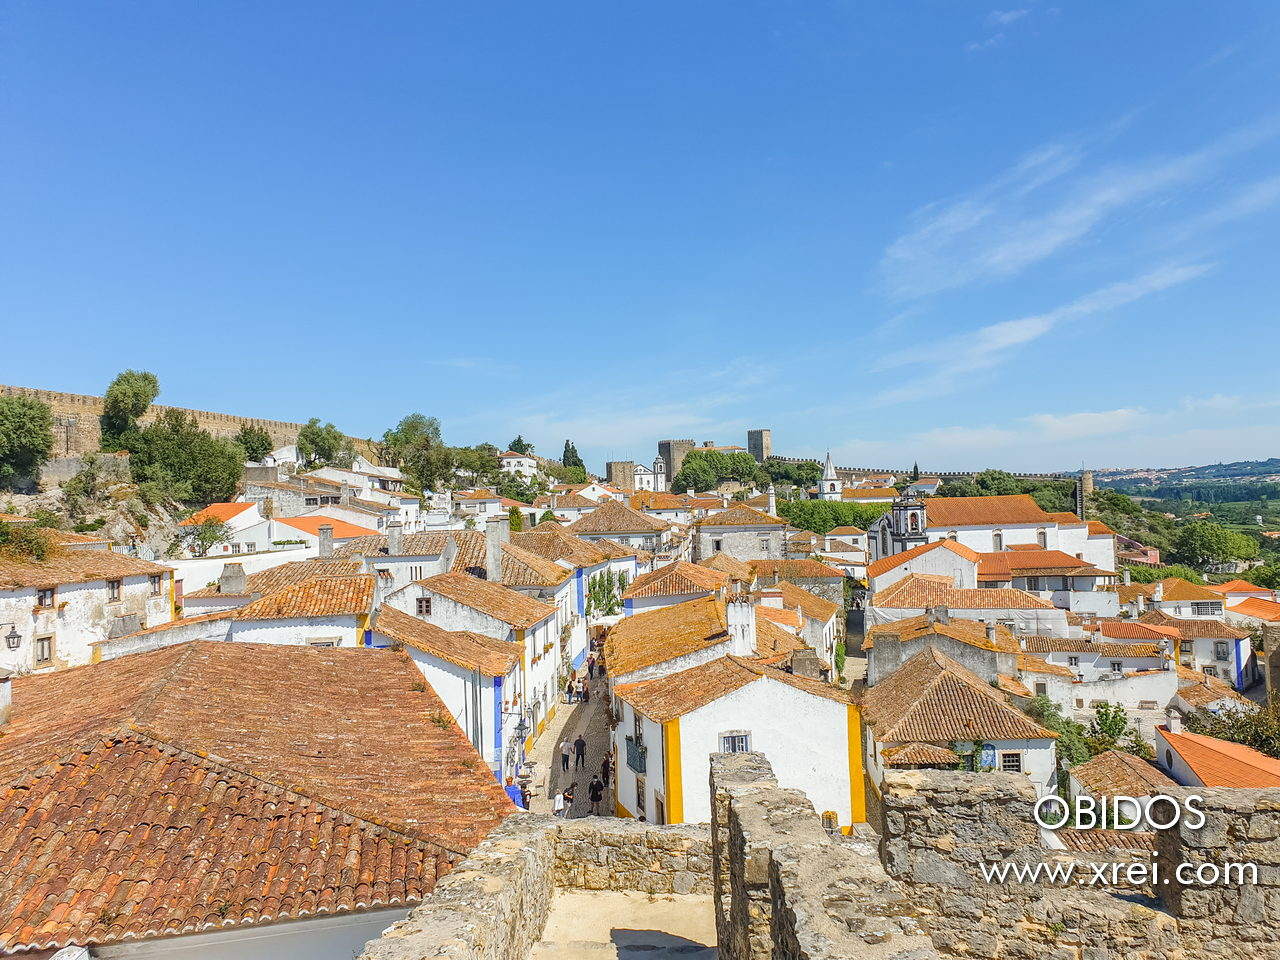 Vila de Óbidos, located within the walls of the Castle of Obidos, in Portugal